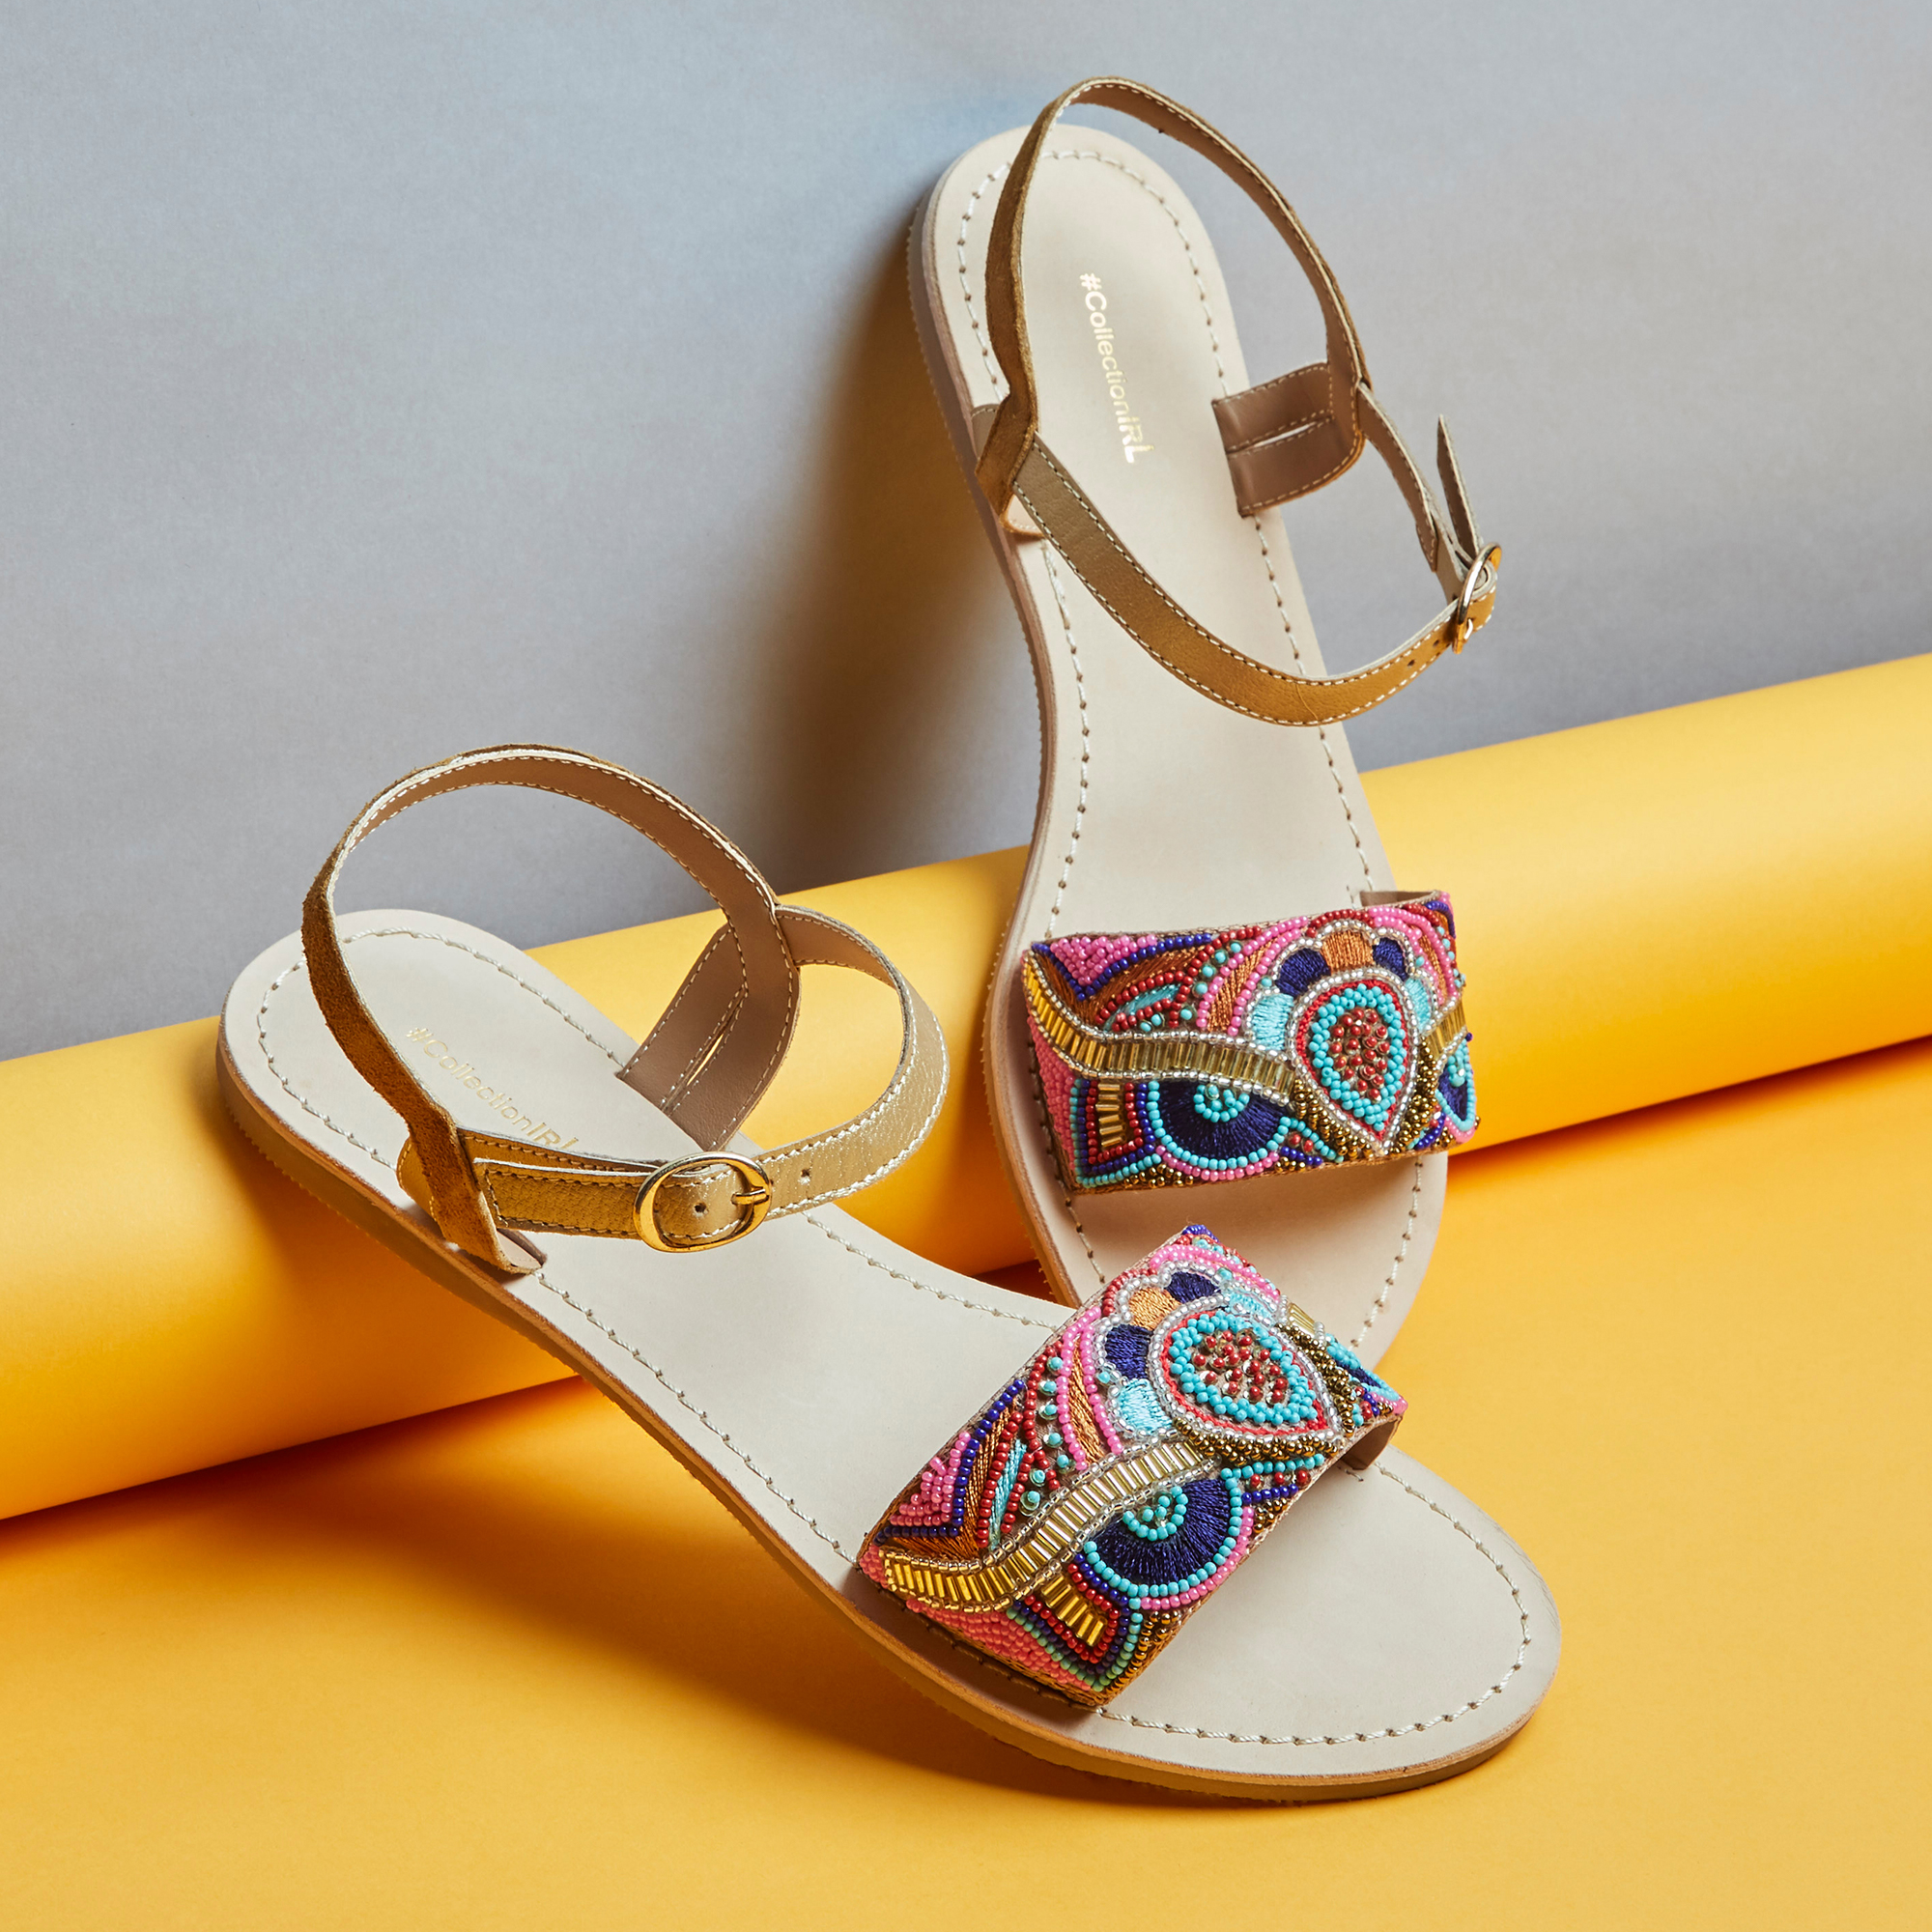 Collection de sandales, baskets et espadrilles #collectionIRL sur Showroomprivé.